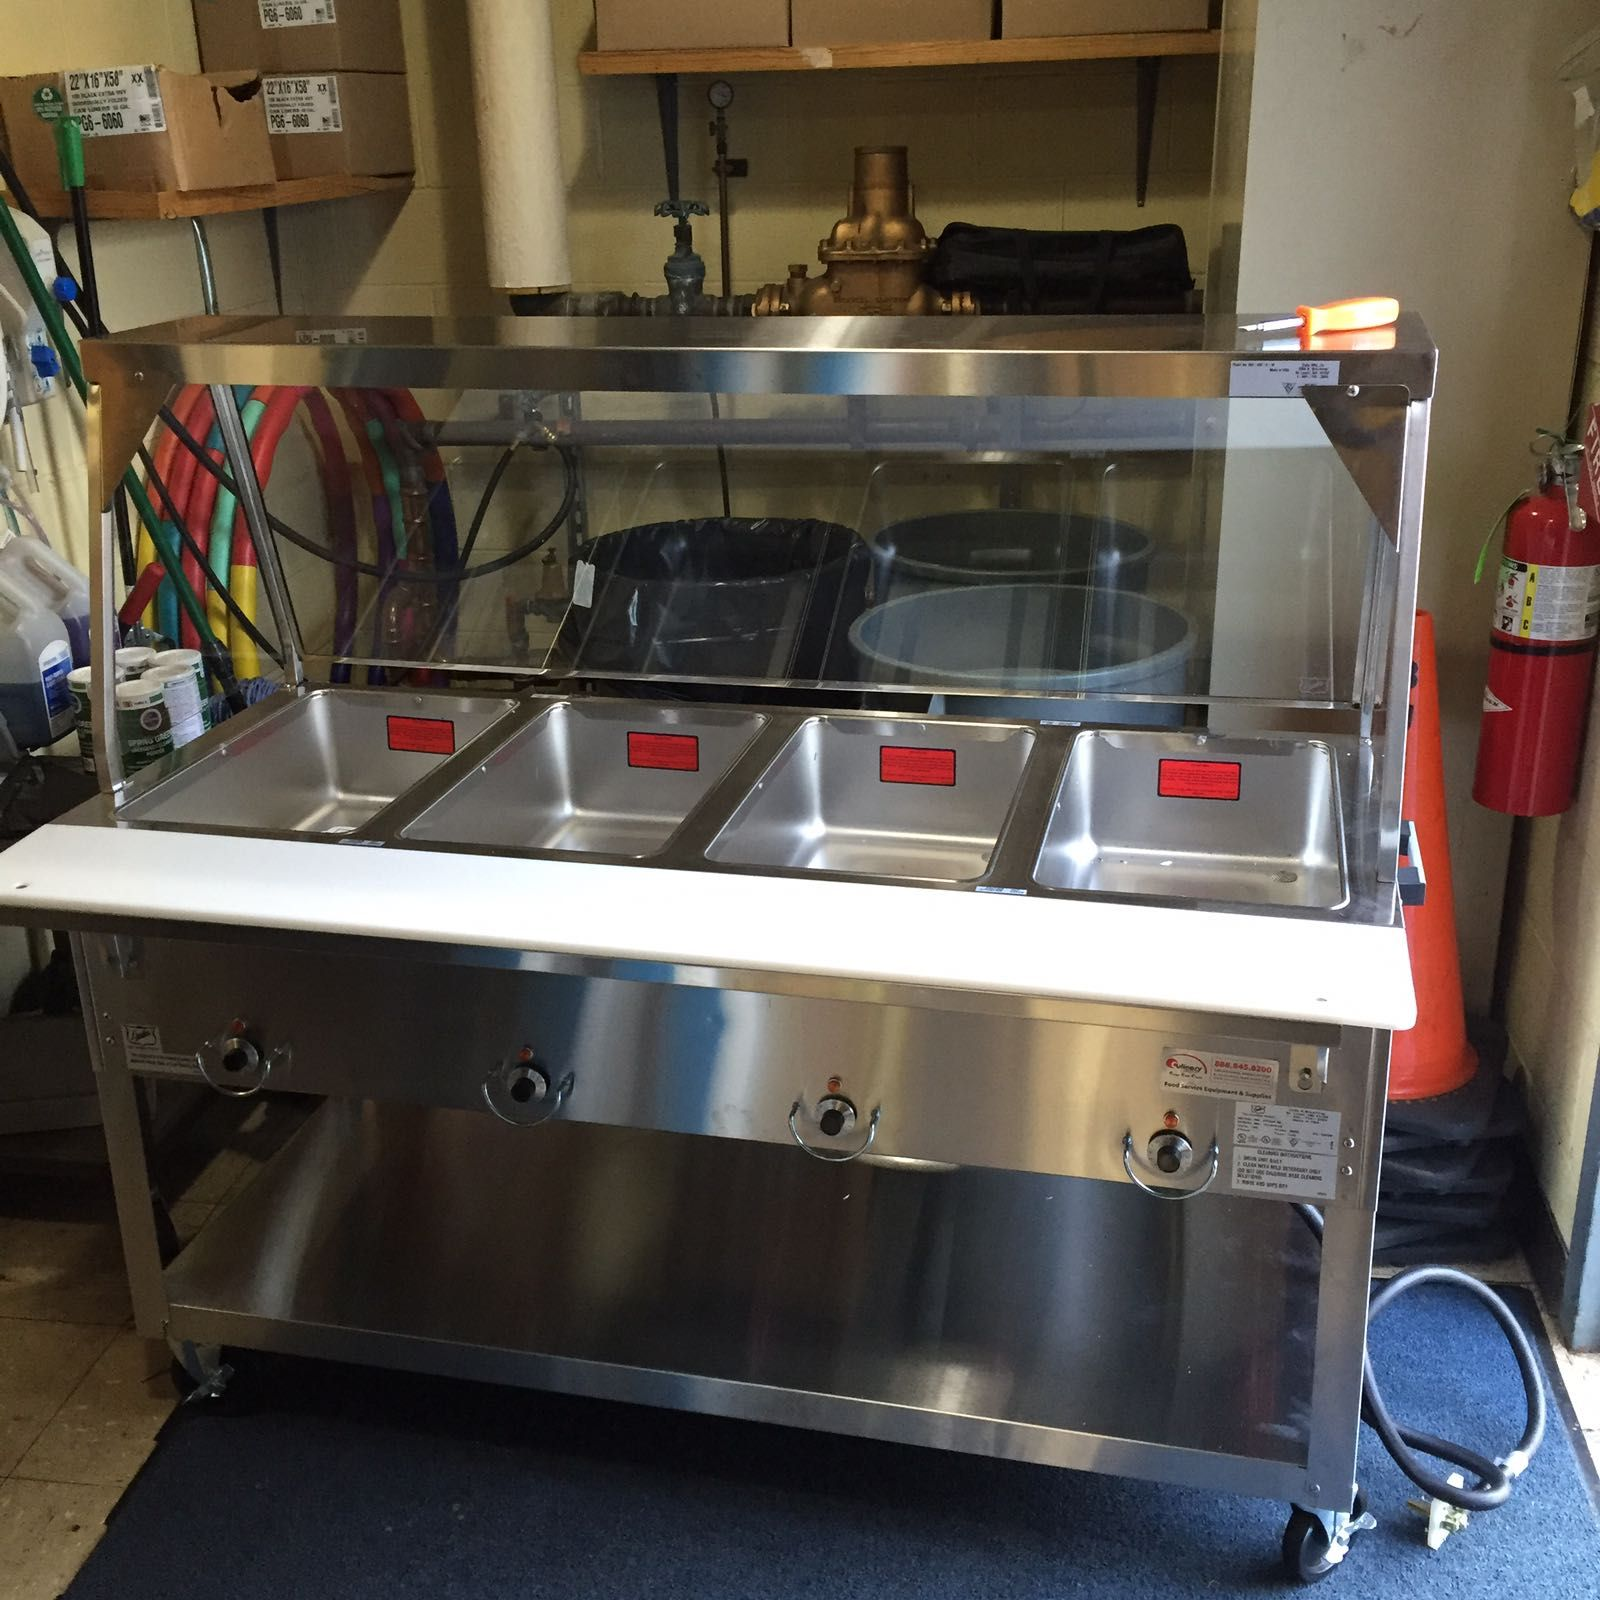 A New Duke Heated Steam Table Httpswwwculinarydepotinccom - Cafeteria steam table